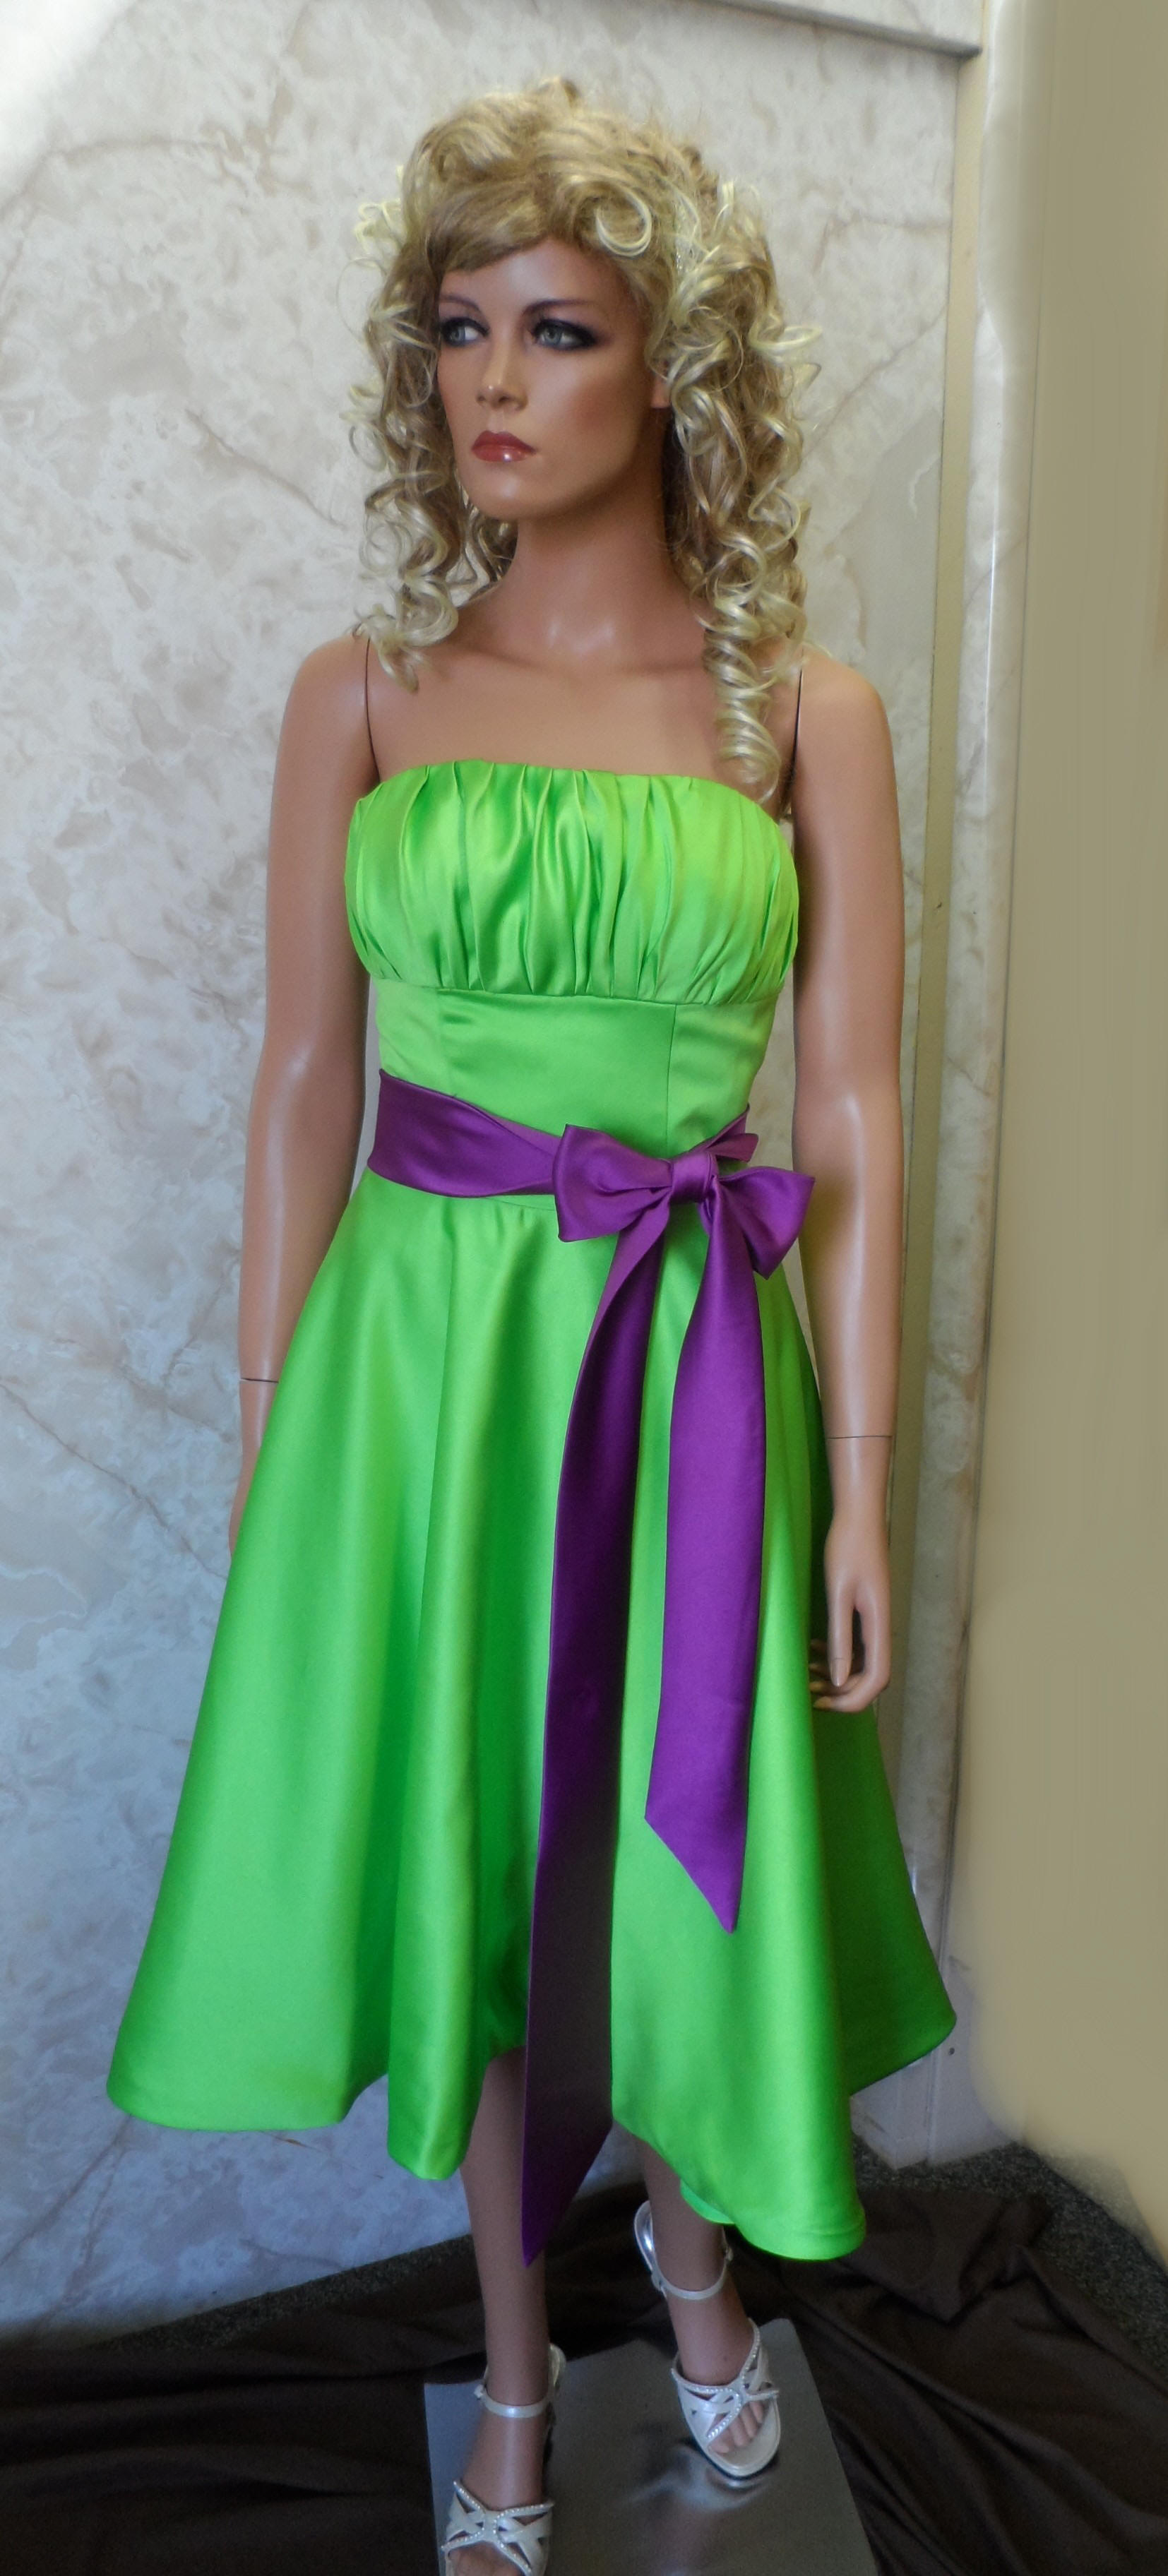 Lime green strapless dress with purple sash